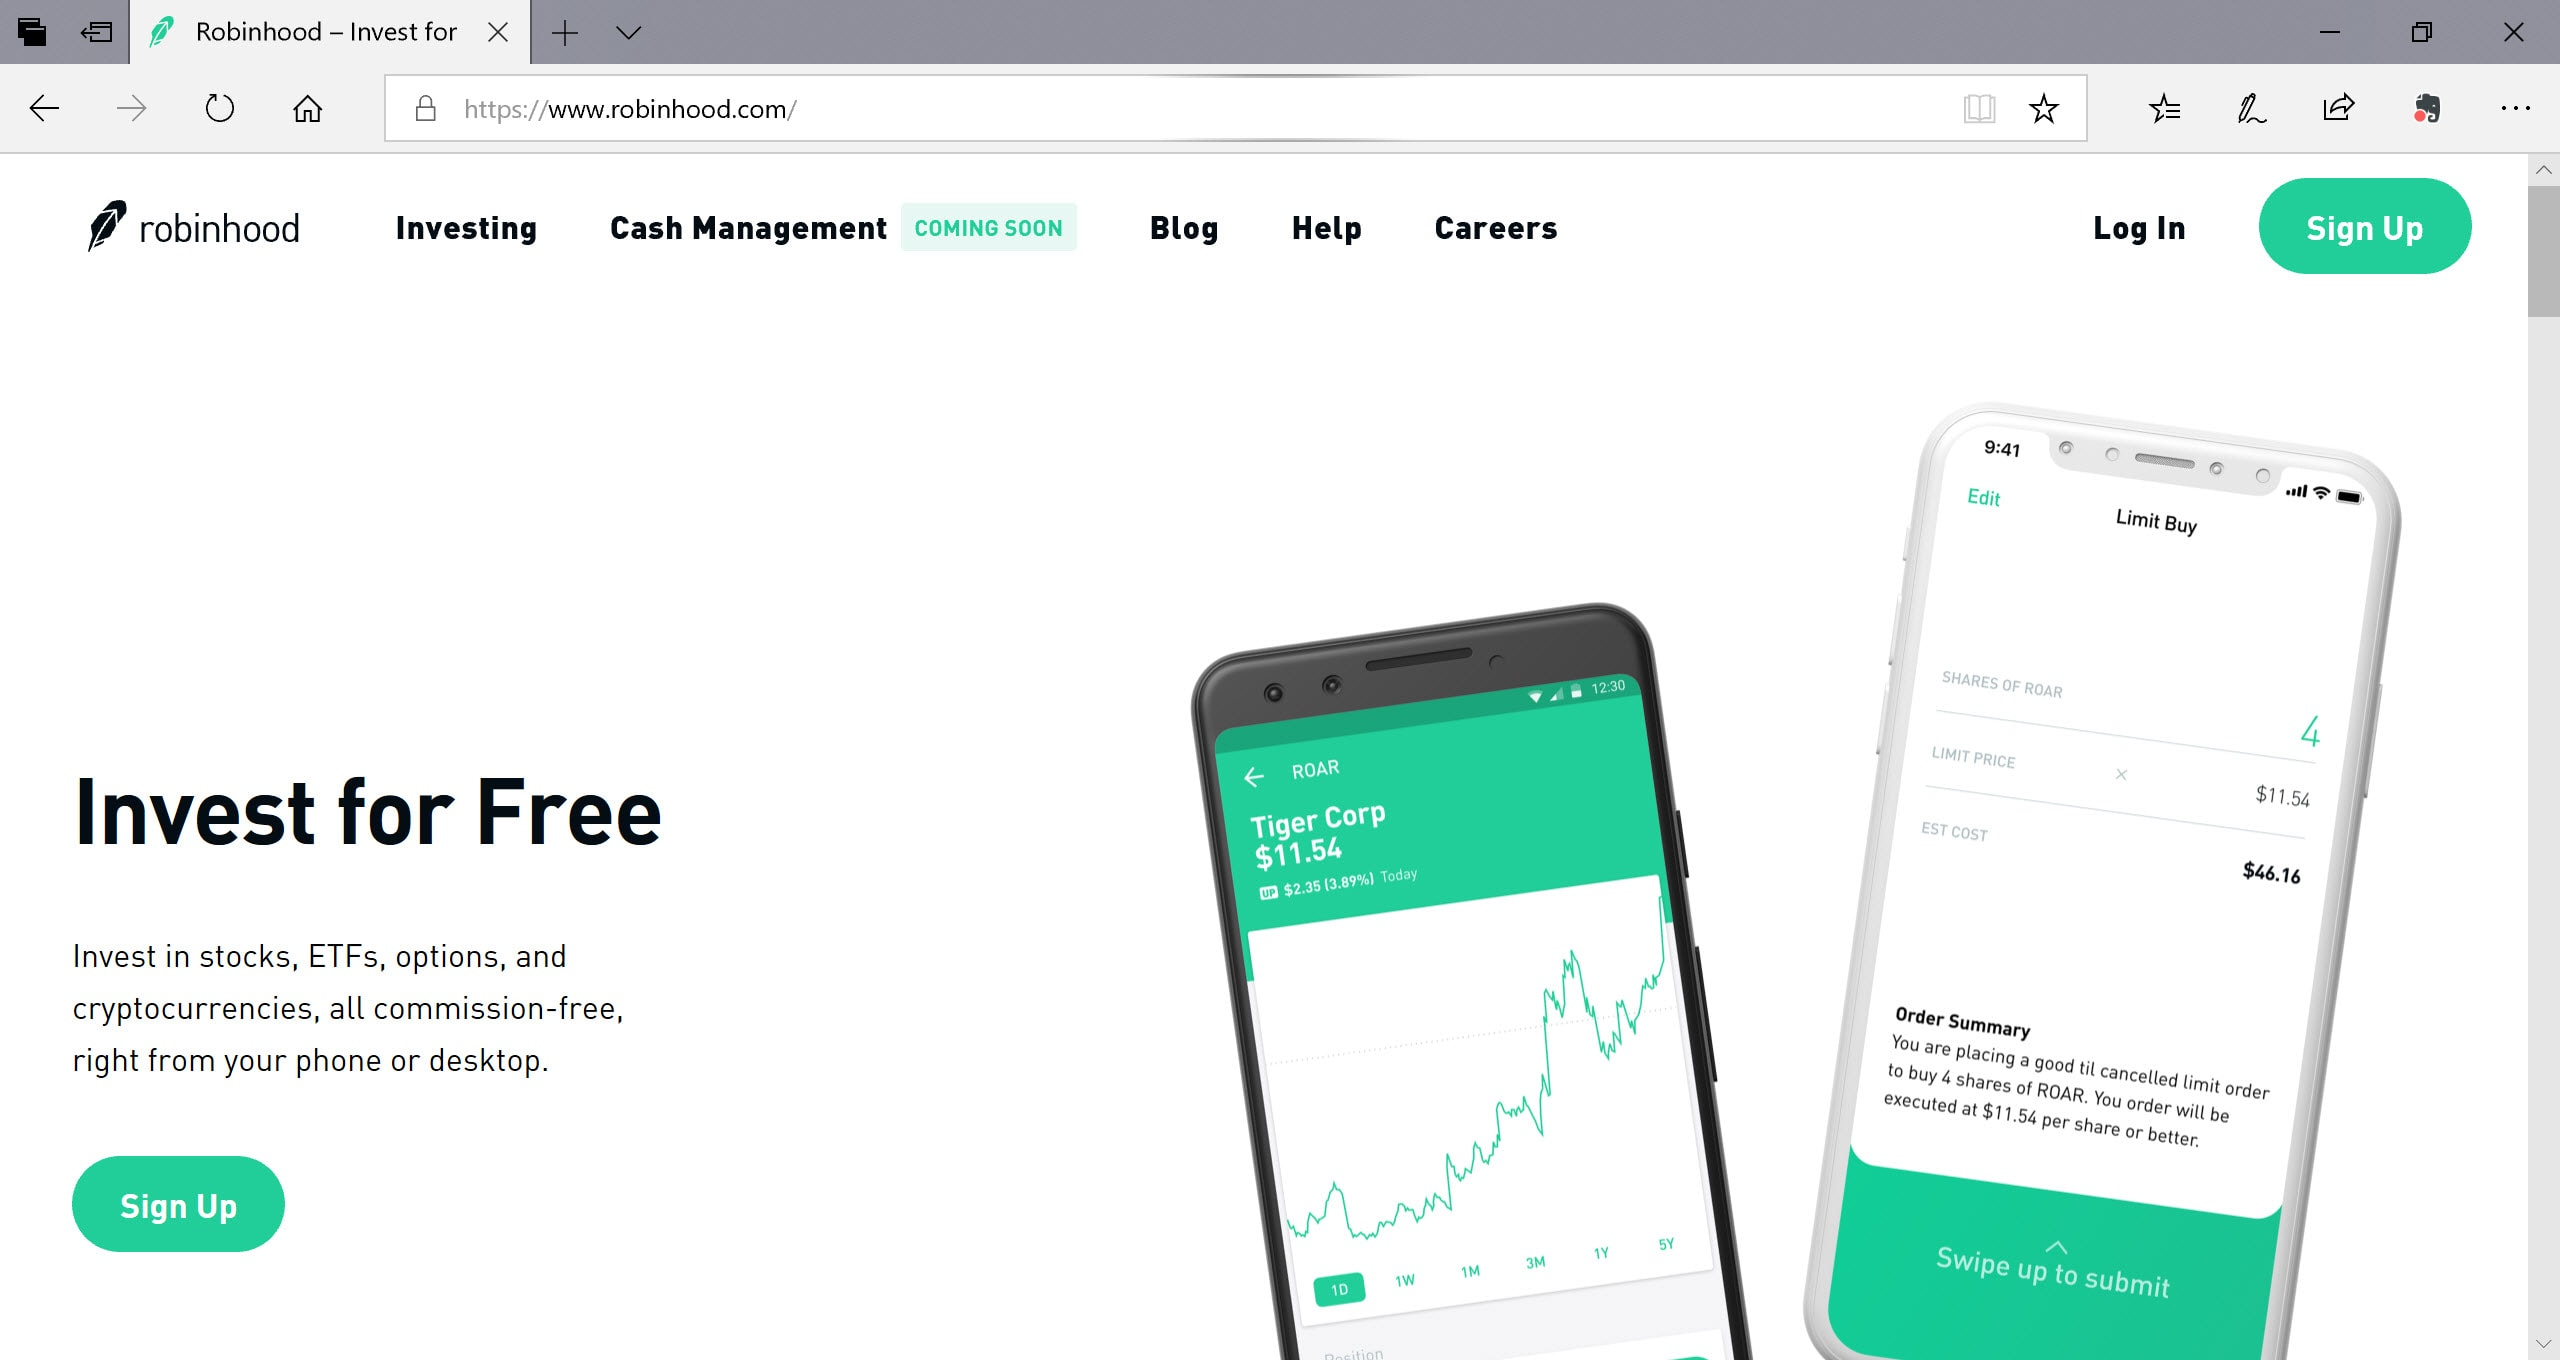 Why Can I Trade After Hours In Robinhood